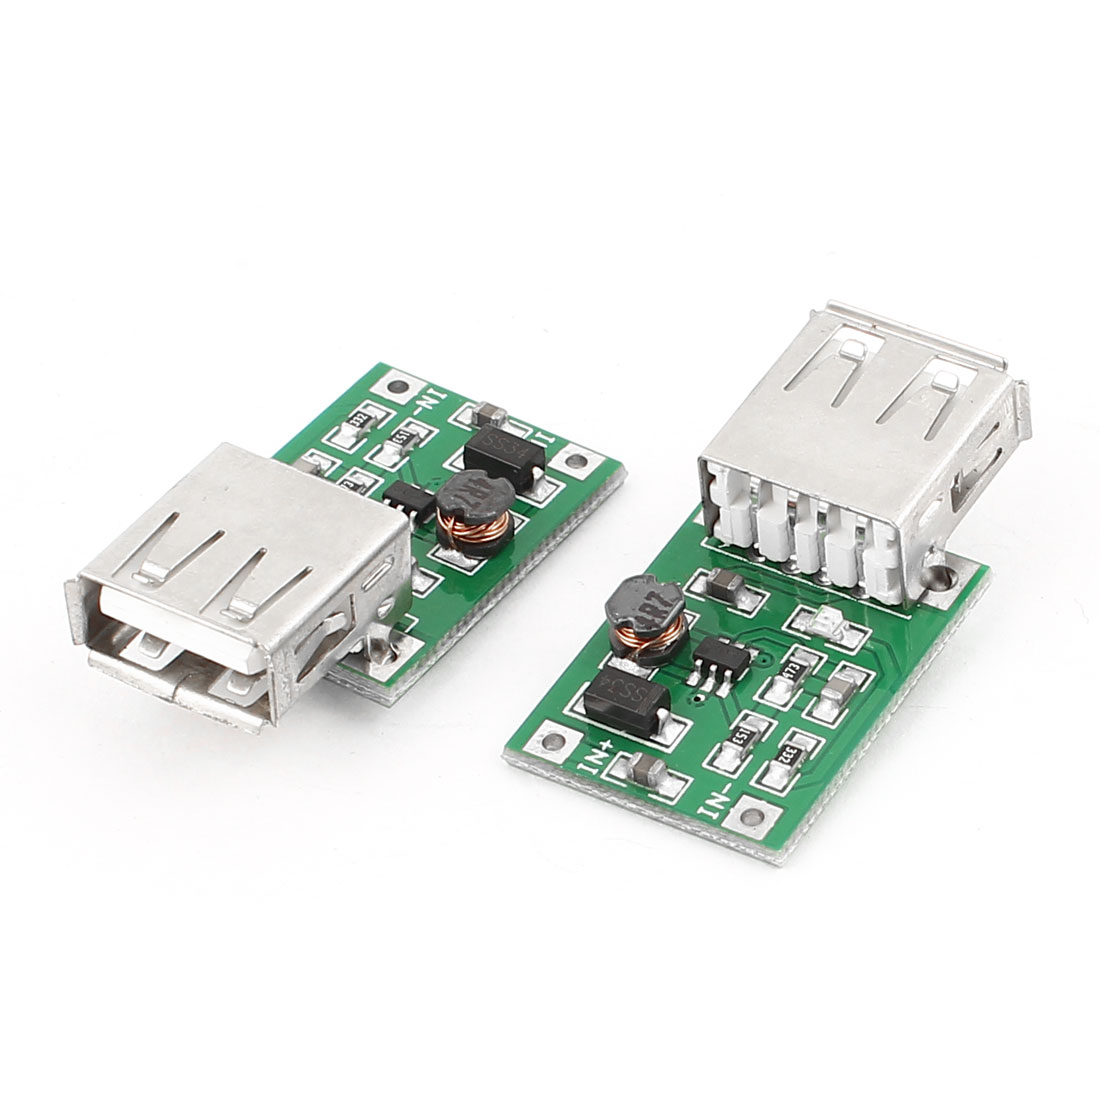 2 Pcs DC-DC Converter Step Up Boost Module 0.9V to 5V USB Charger for MP3 MP4